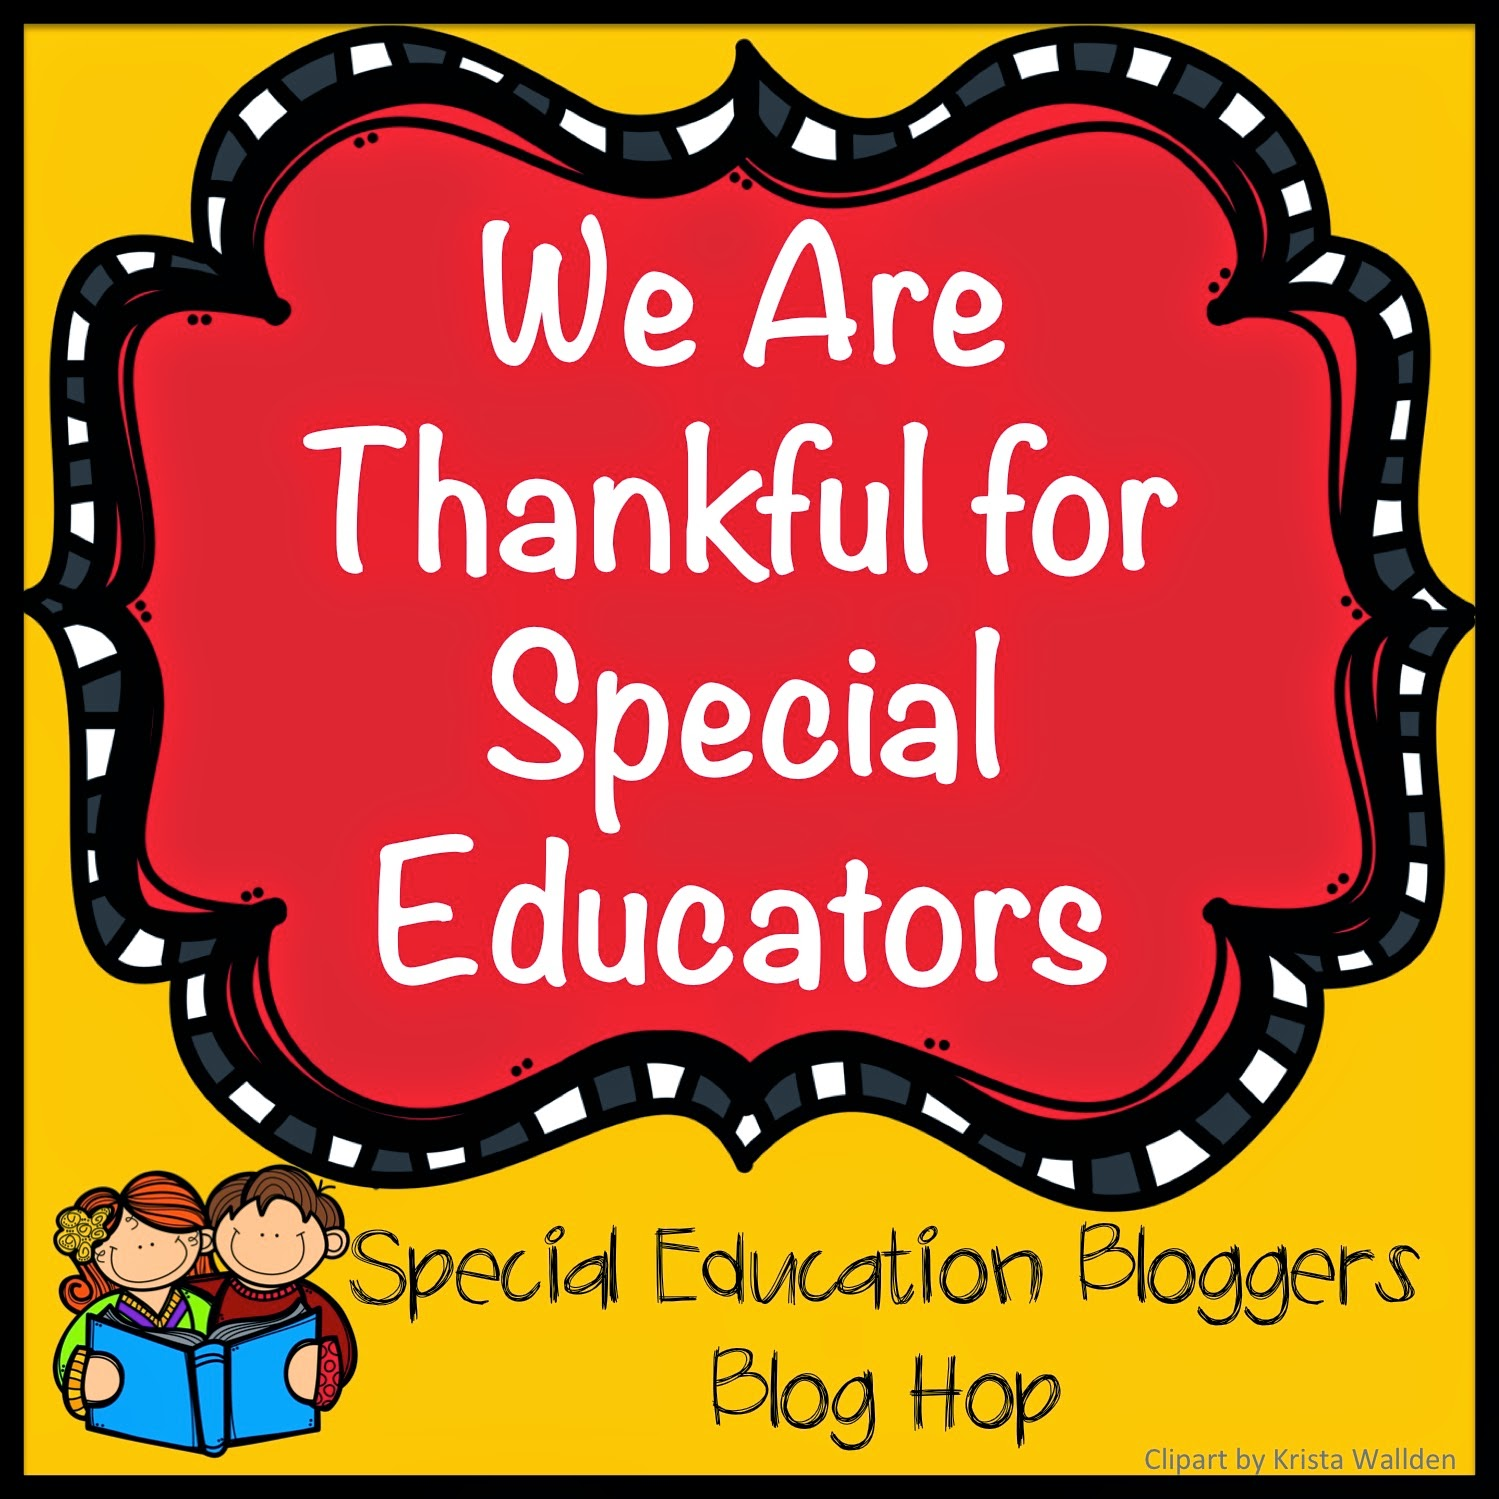 http://youaut-aknow.blogspot.com/2014/11/special-educators-thanksgiving-blog-hop.html